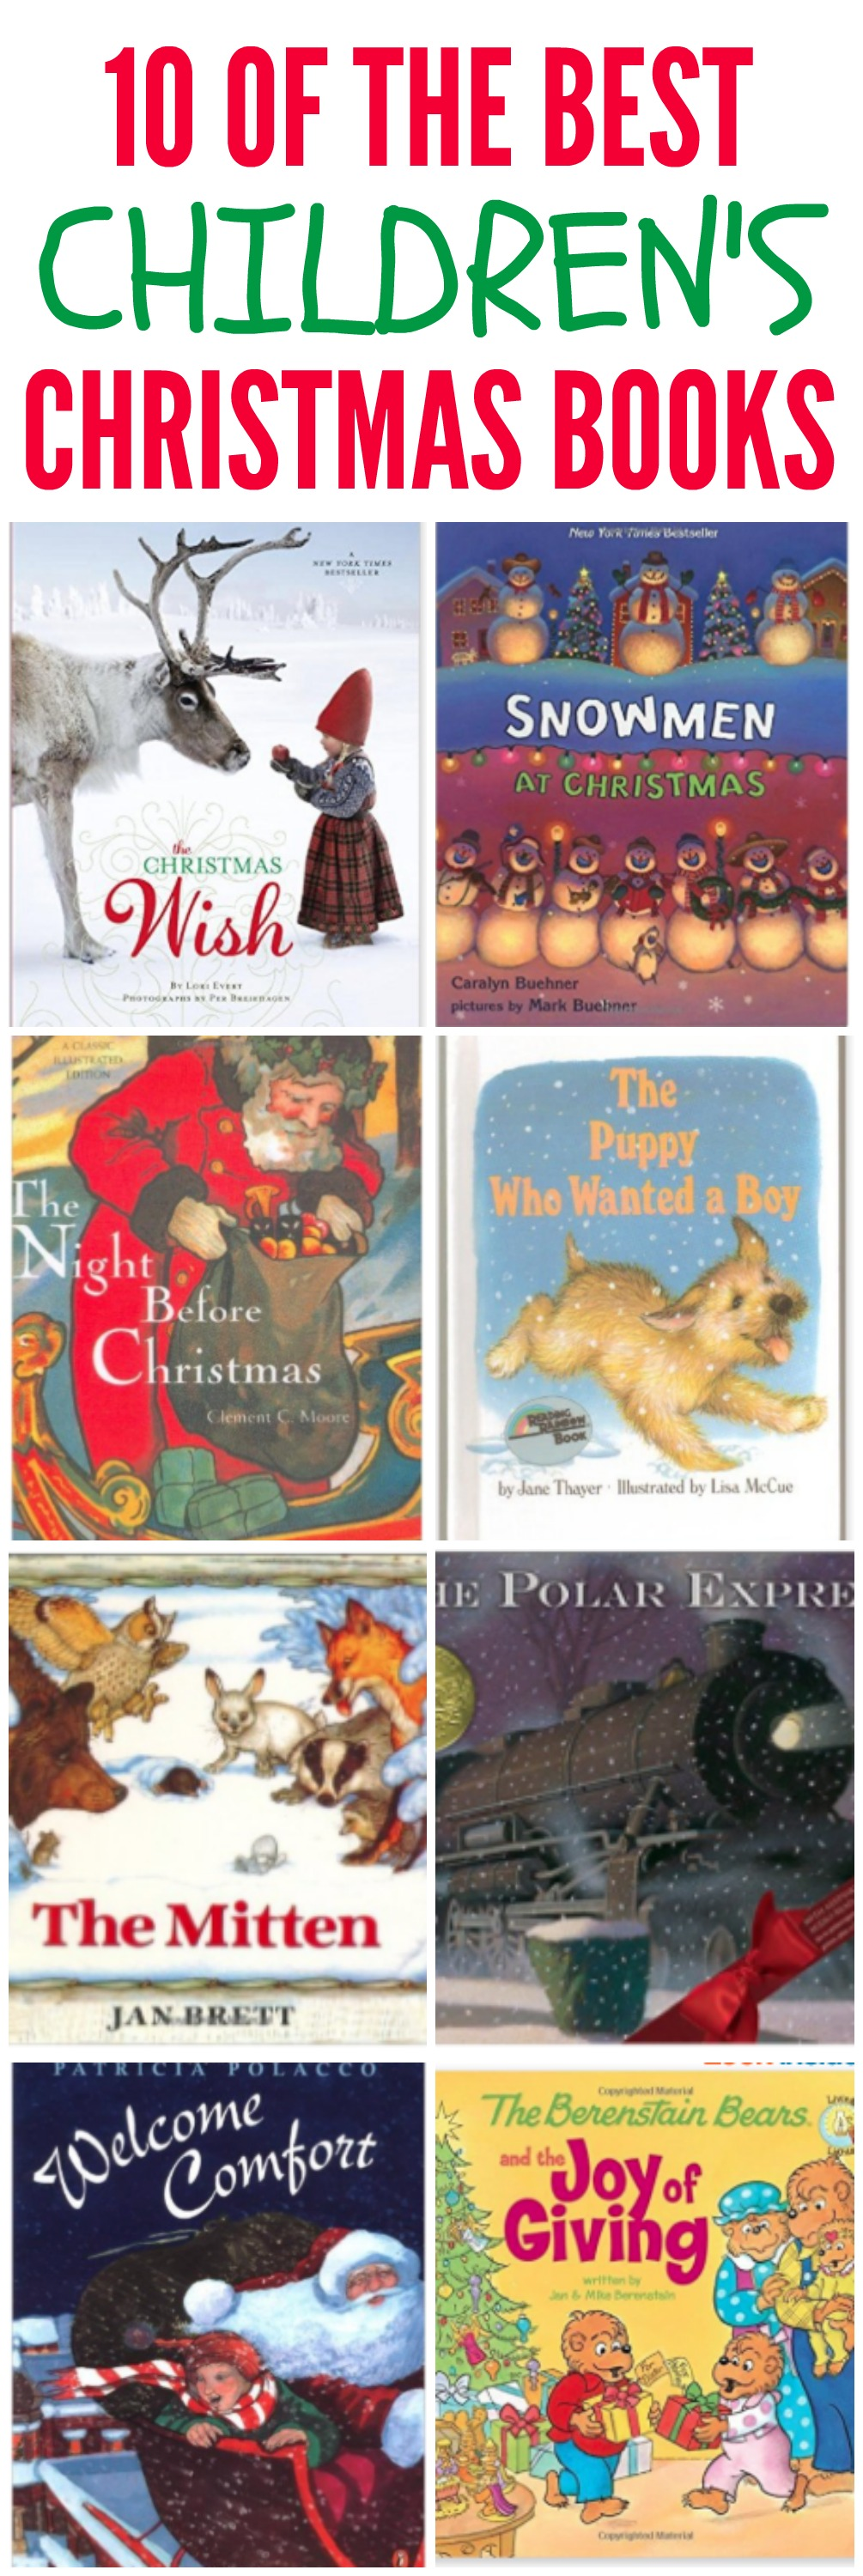 10-of-the-best-childrens-christmas-books